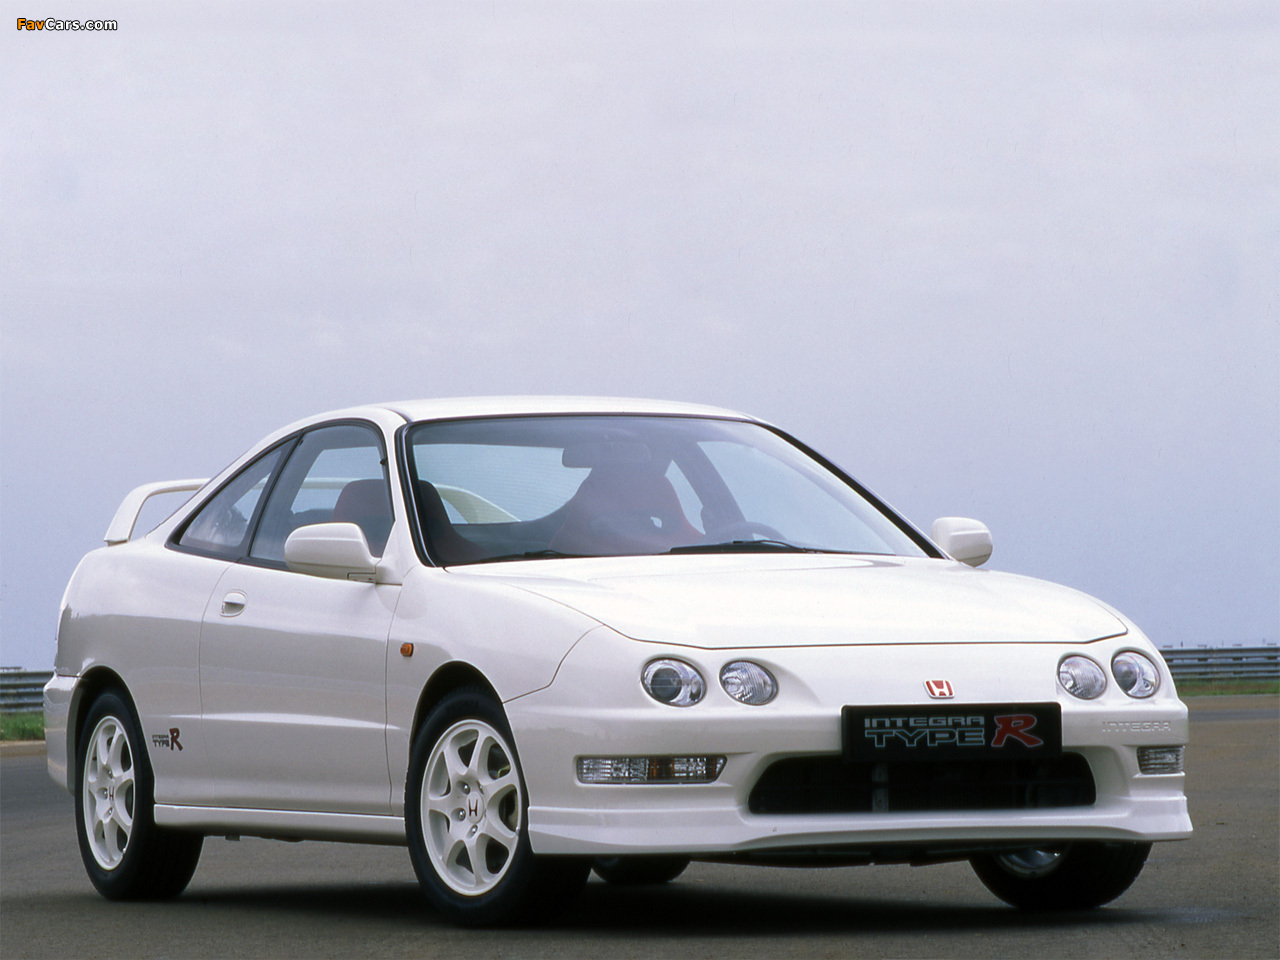 honda integra coupe (dc2) 2000 images #12